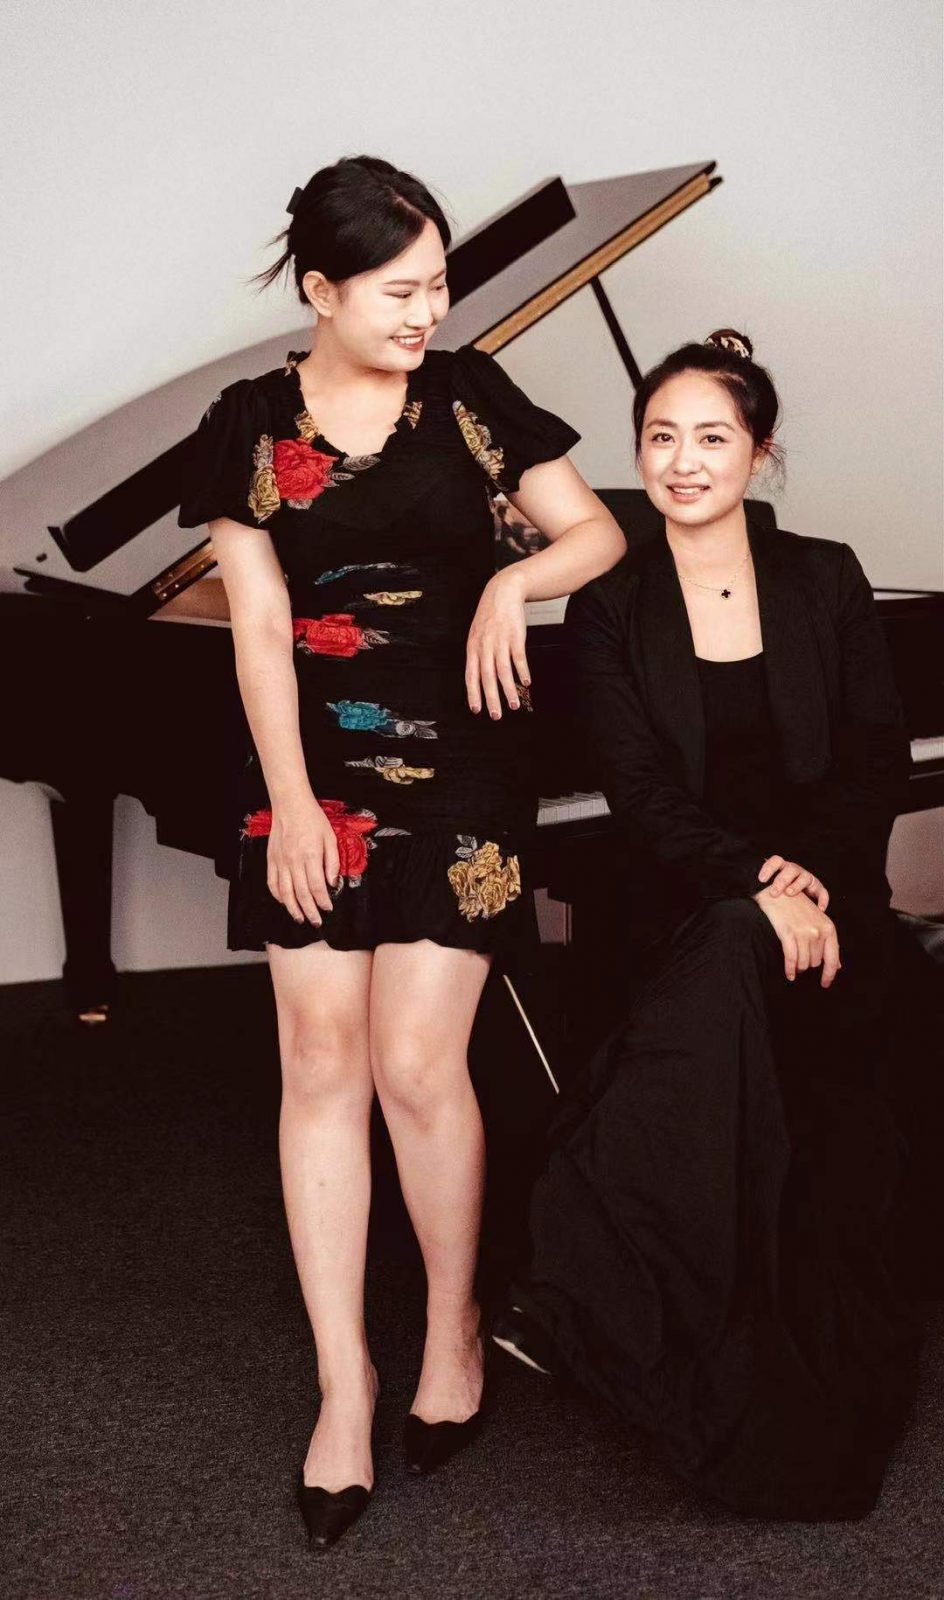 Bumblebee art centre's piano teacher and her student